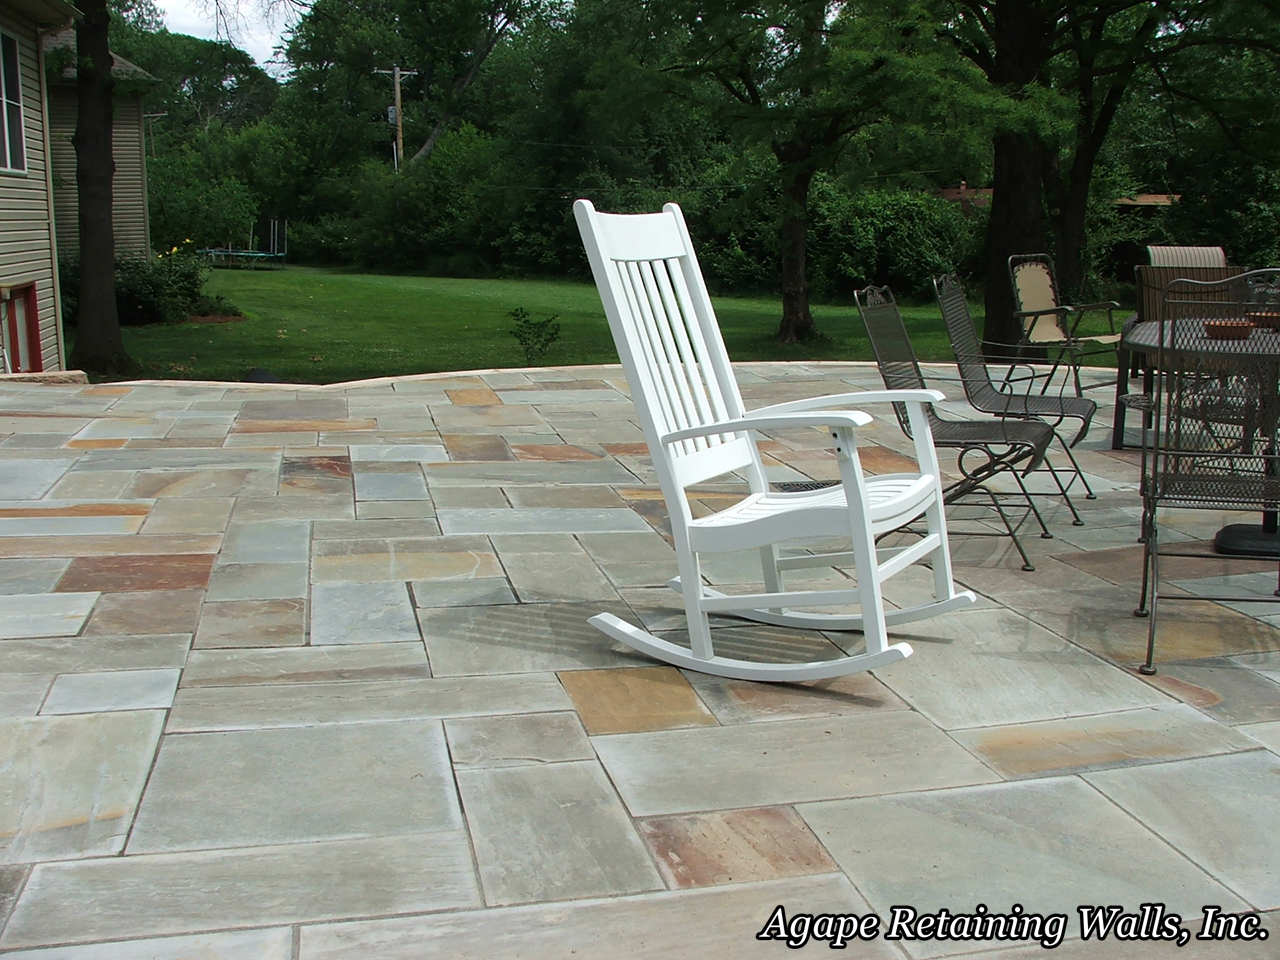 ... natural stone paver patio to a long line of incredible hardscape  projects we at Agape Retaining Walls, Inc. have designed and installed over  the years. - Agape Paver Pictures 3